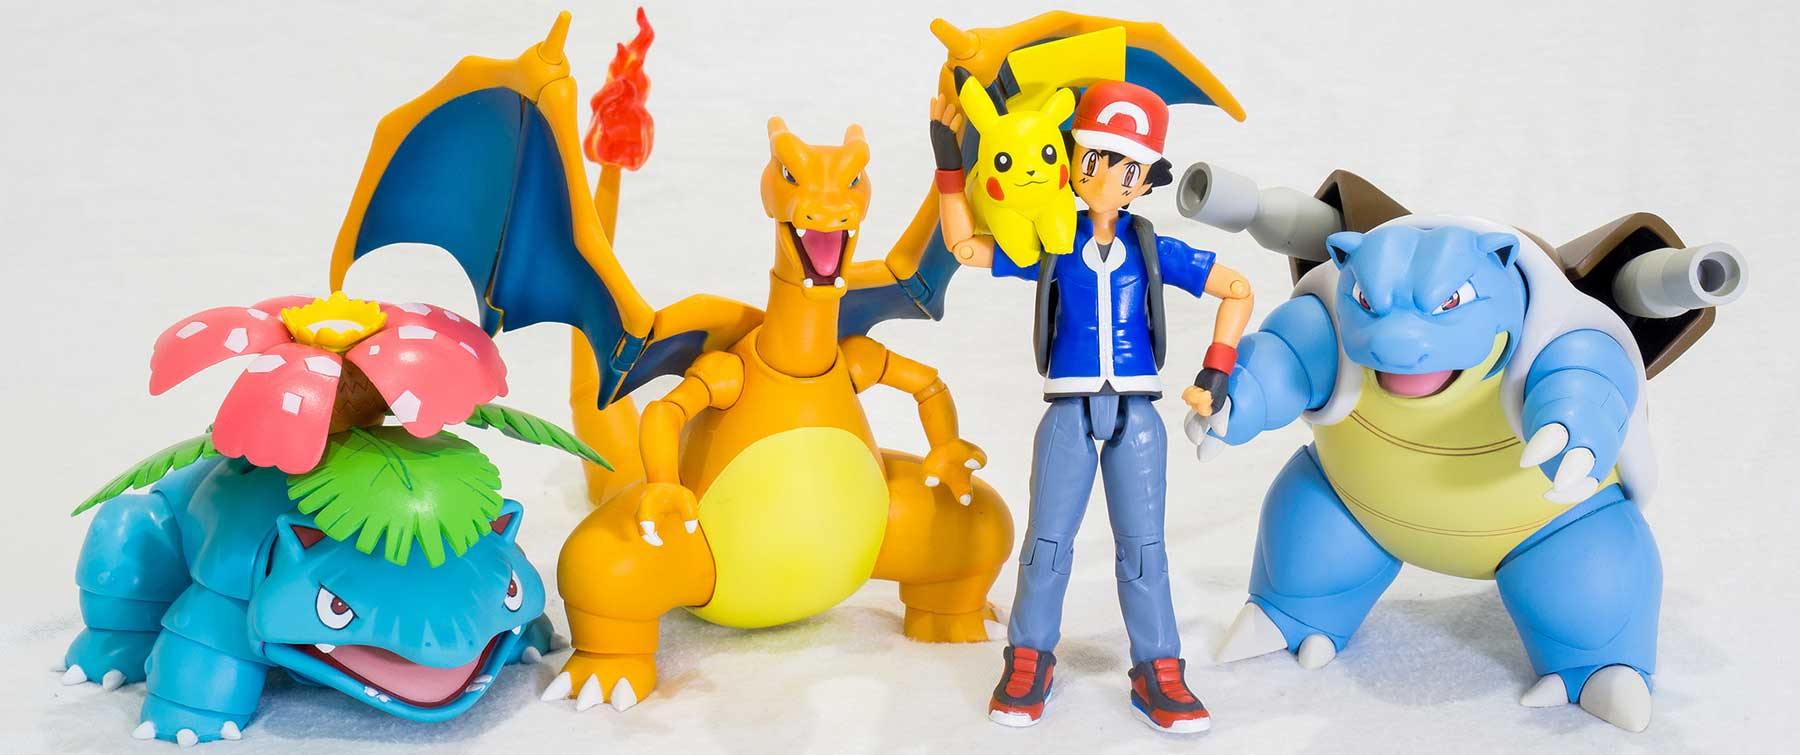 How to Make Pokemon Go Work for Your Business